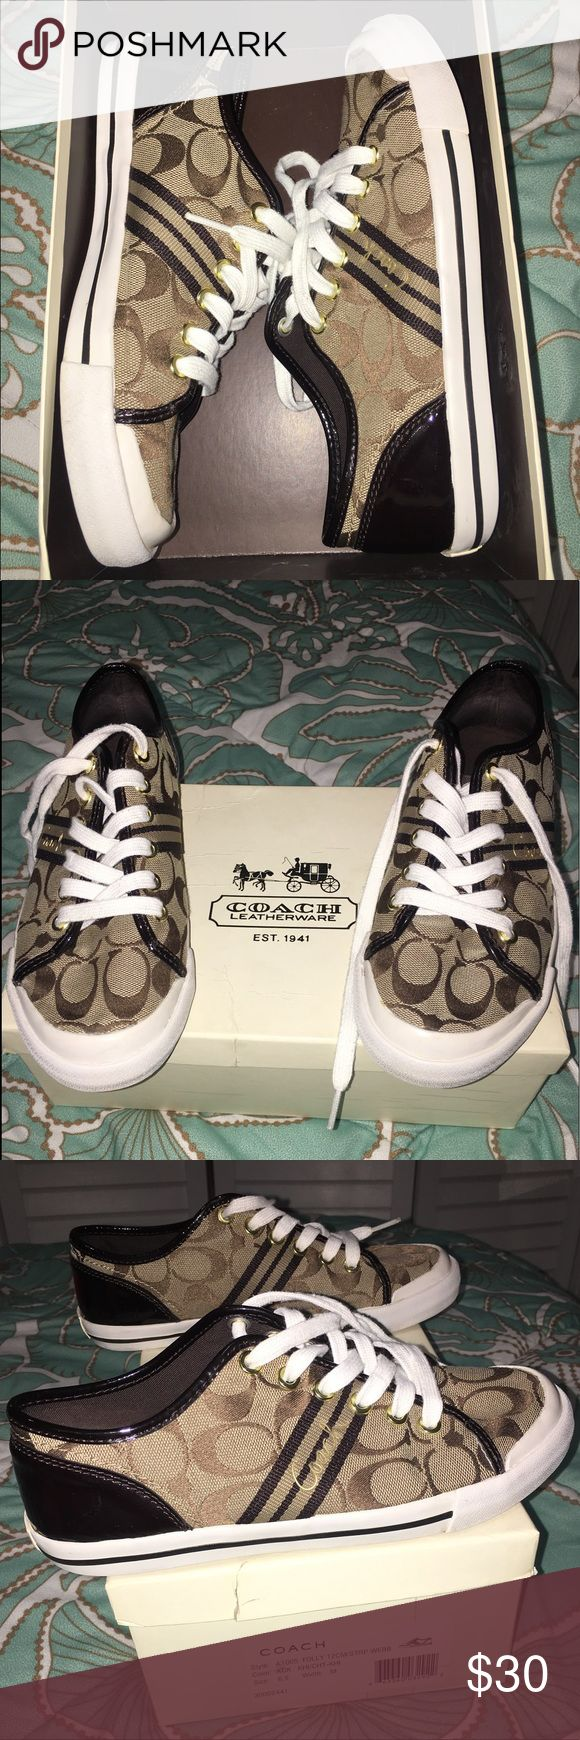 Coach tennis shoes In good condition hardly worn. Cleaned shoes and box is included Coach Shoes Sneakers